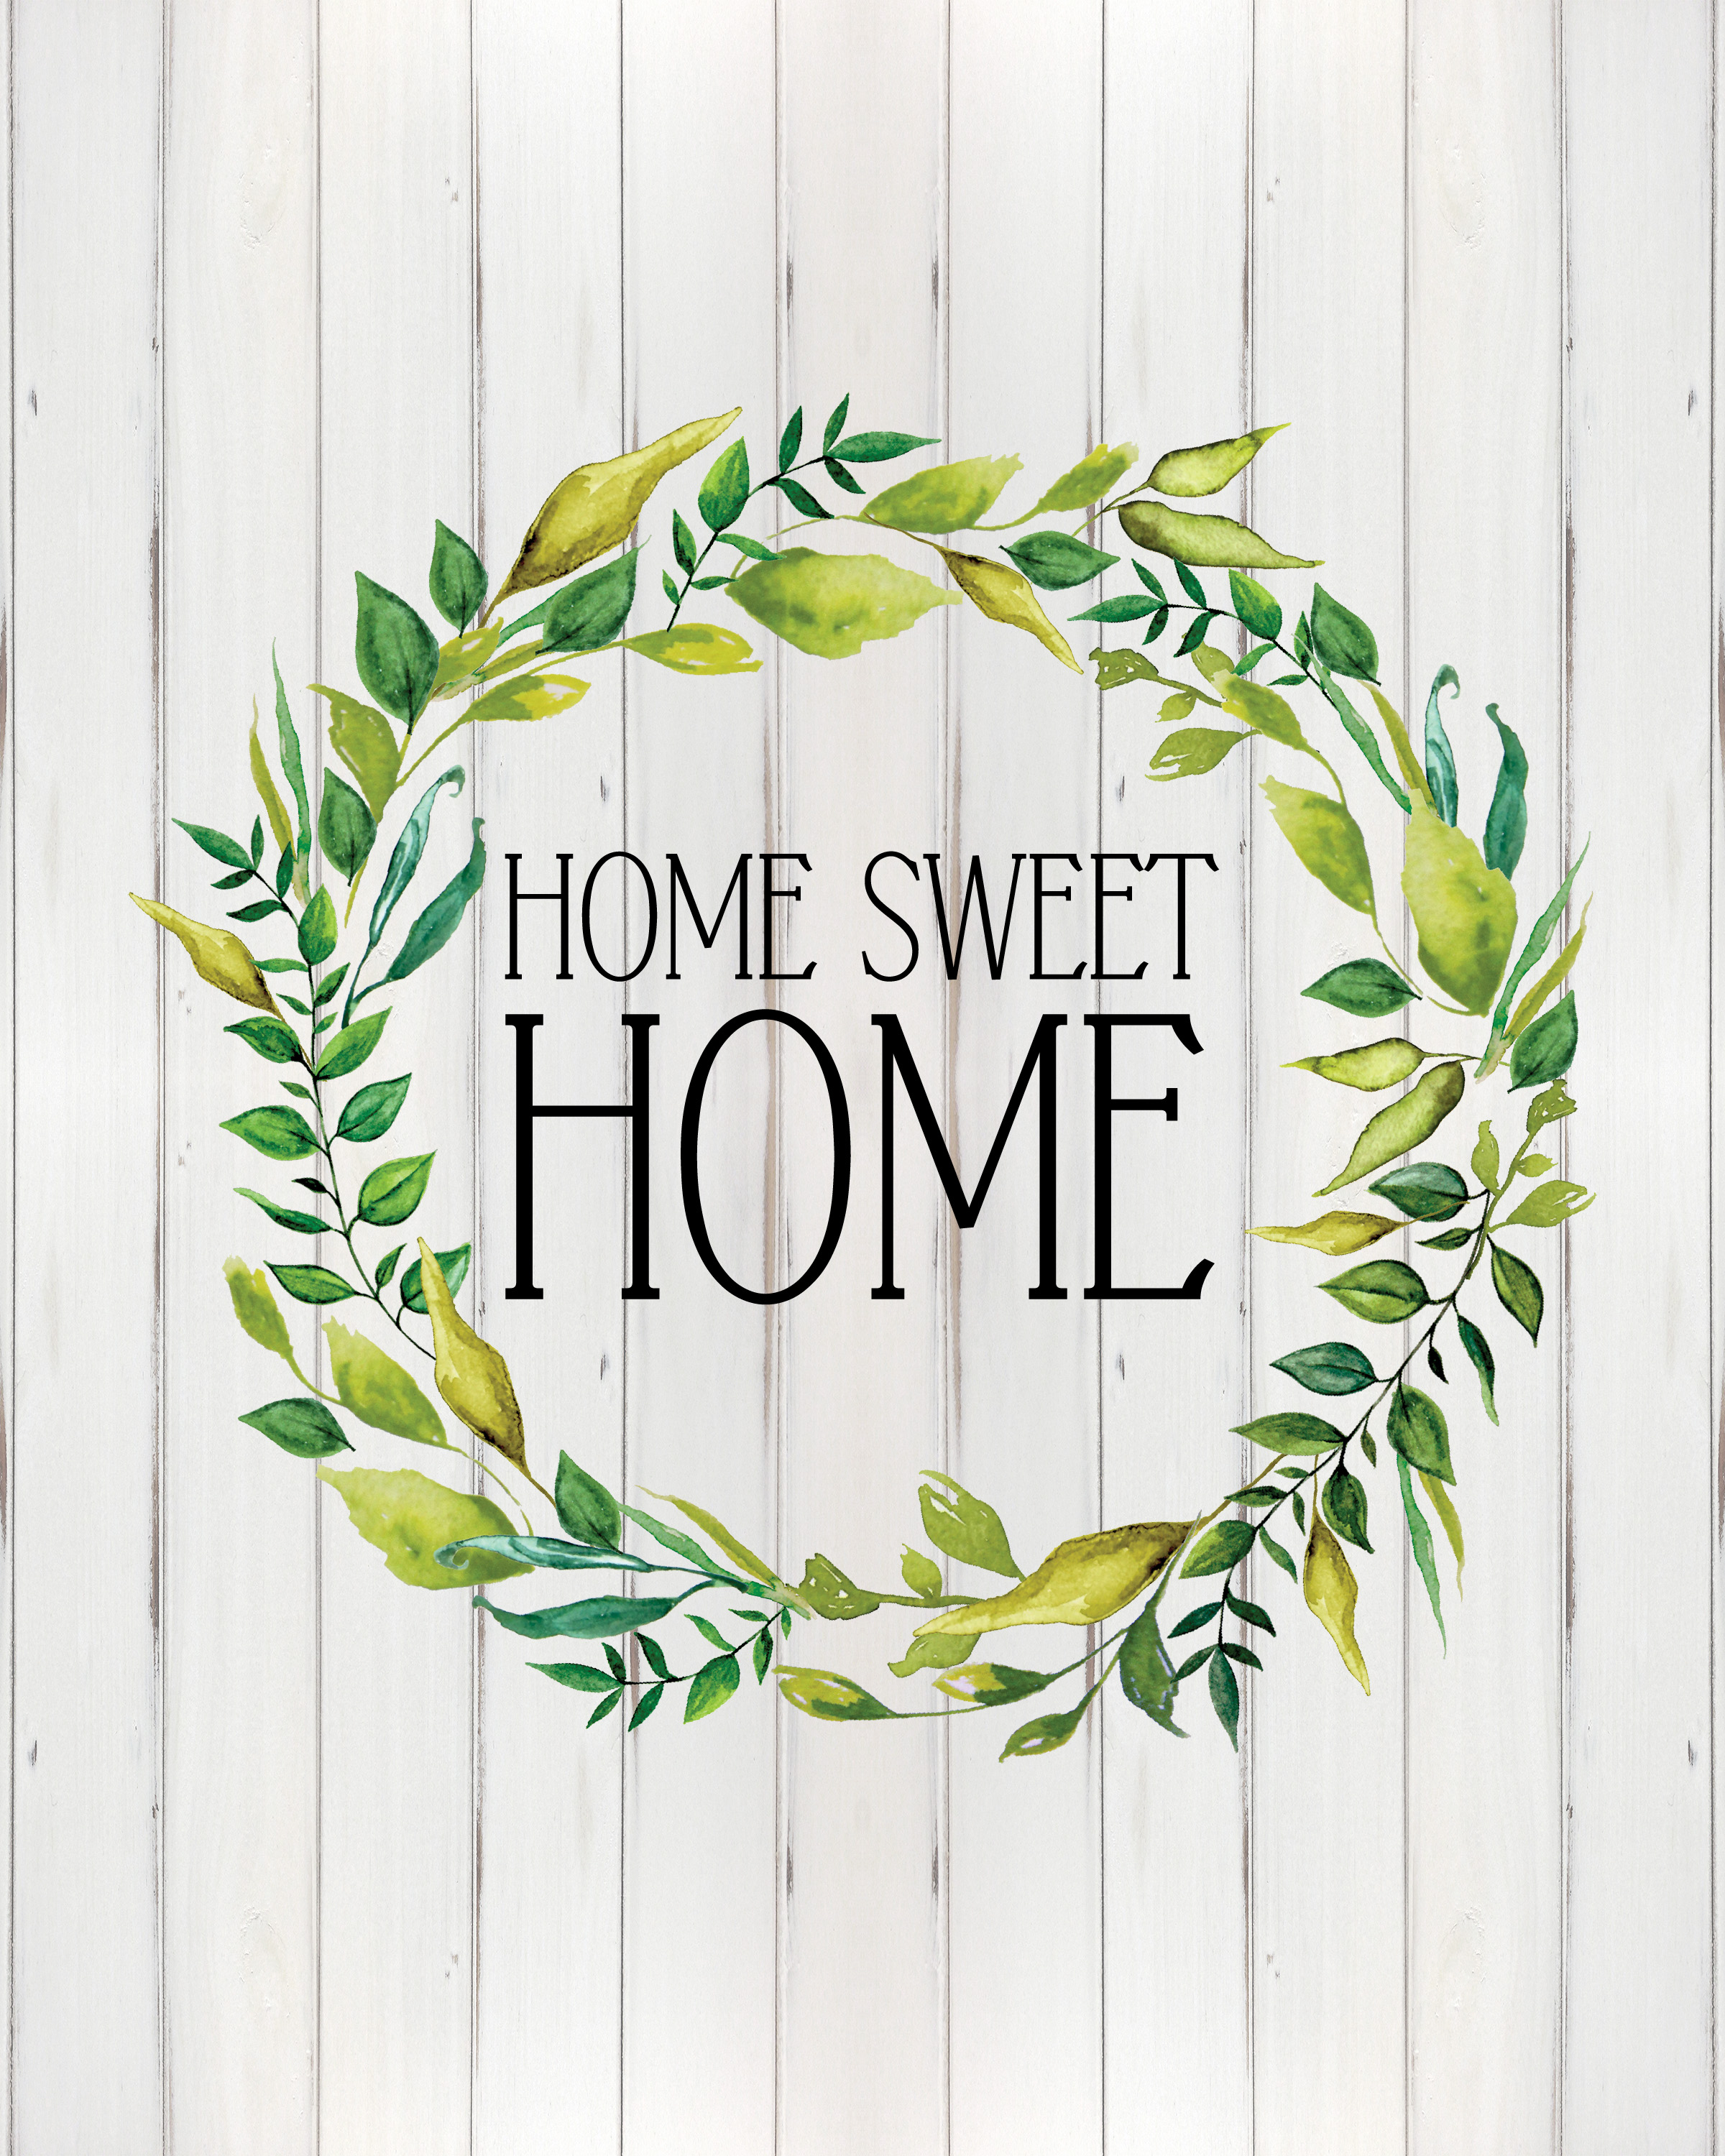 Sweet image pertaining to home sweet home printable